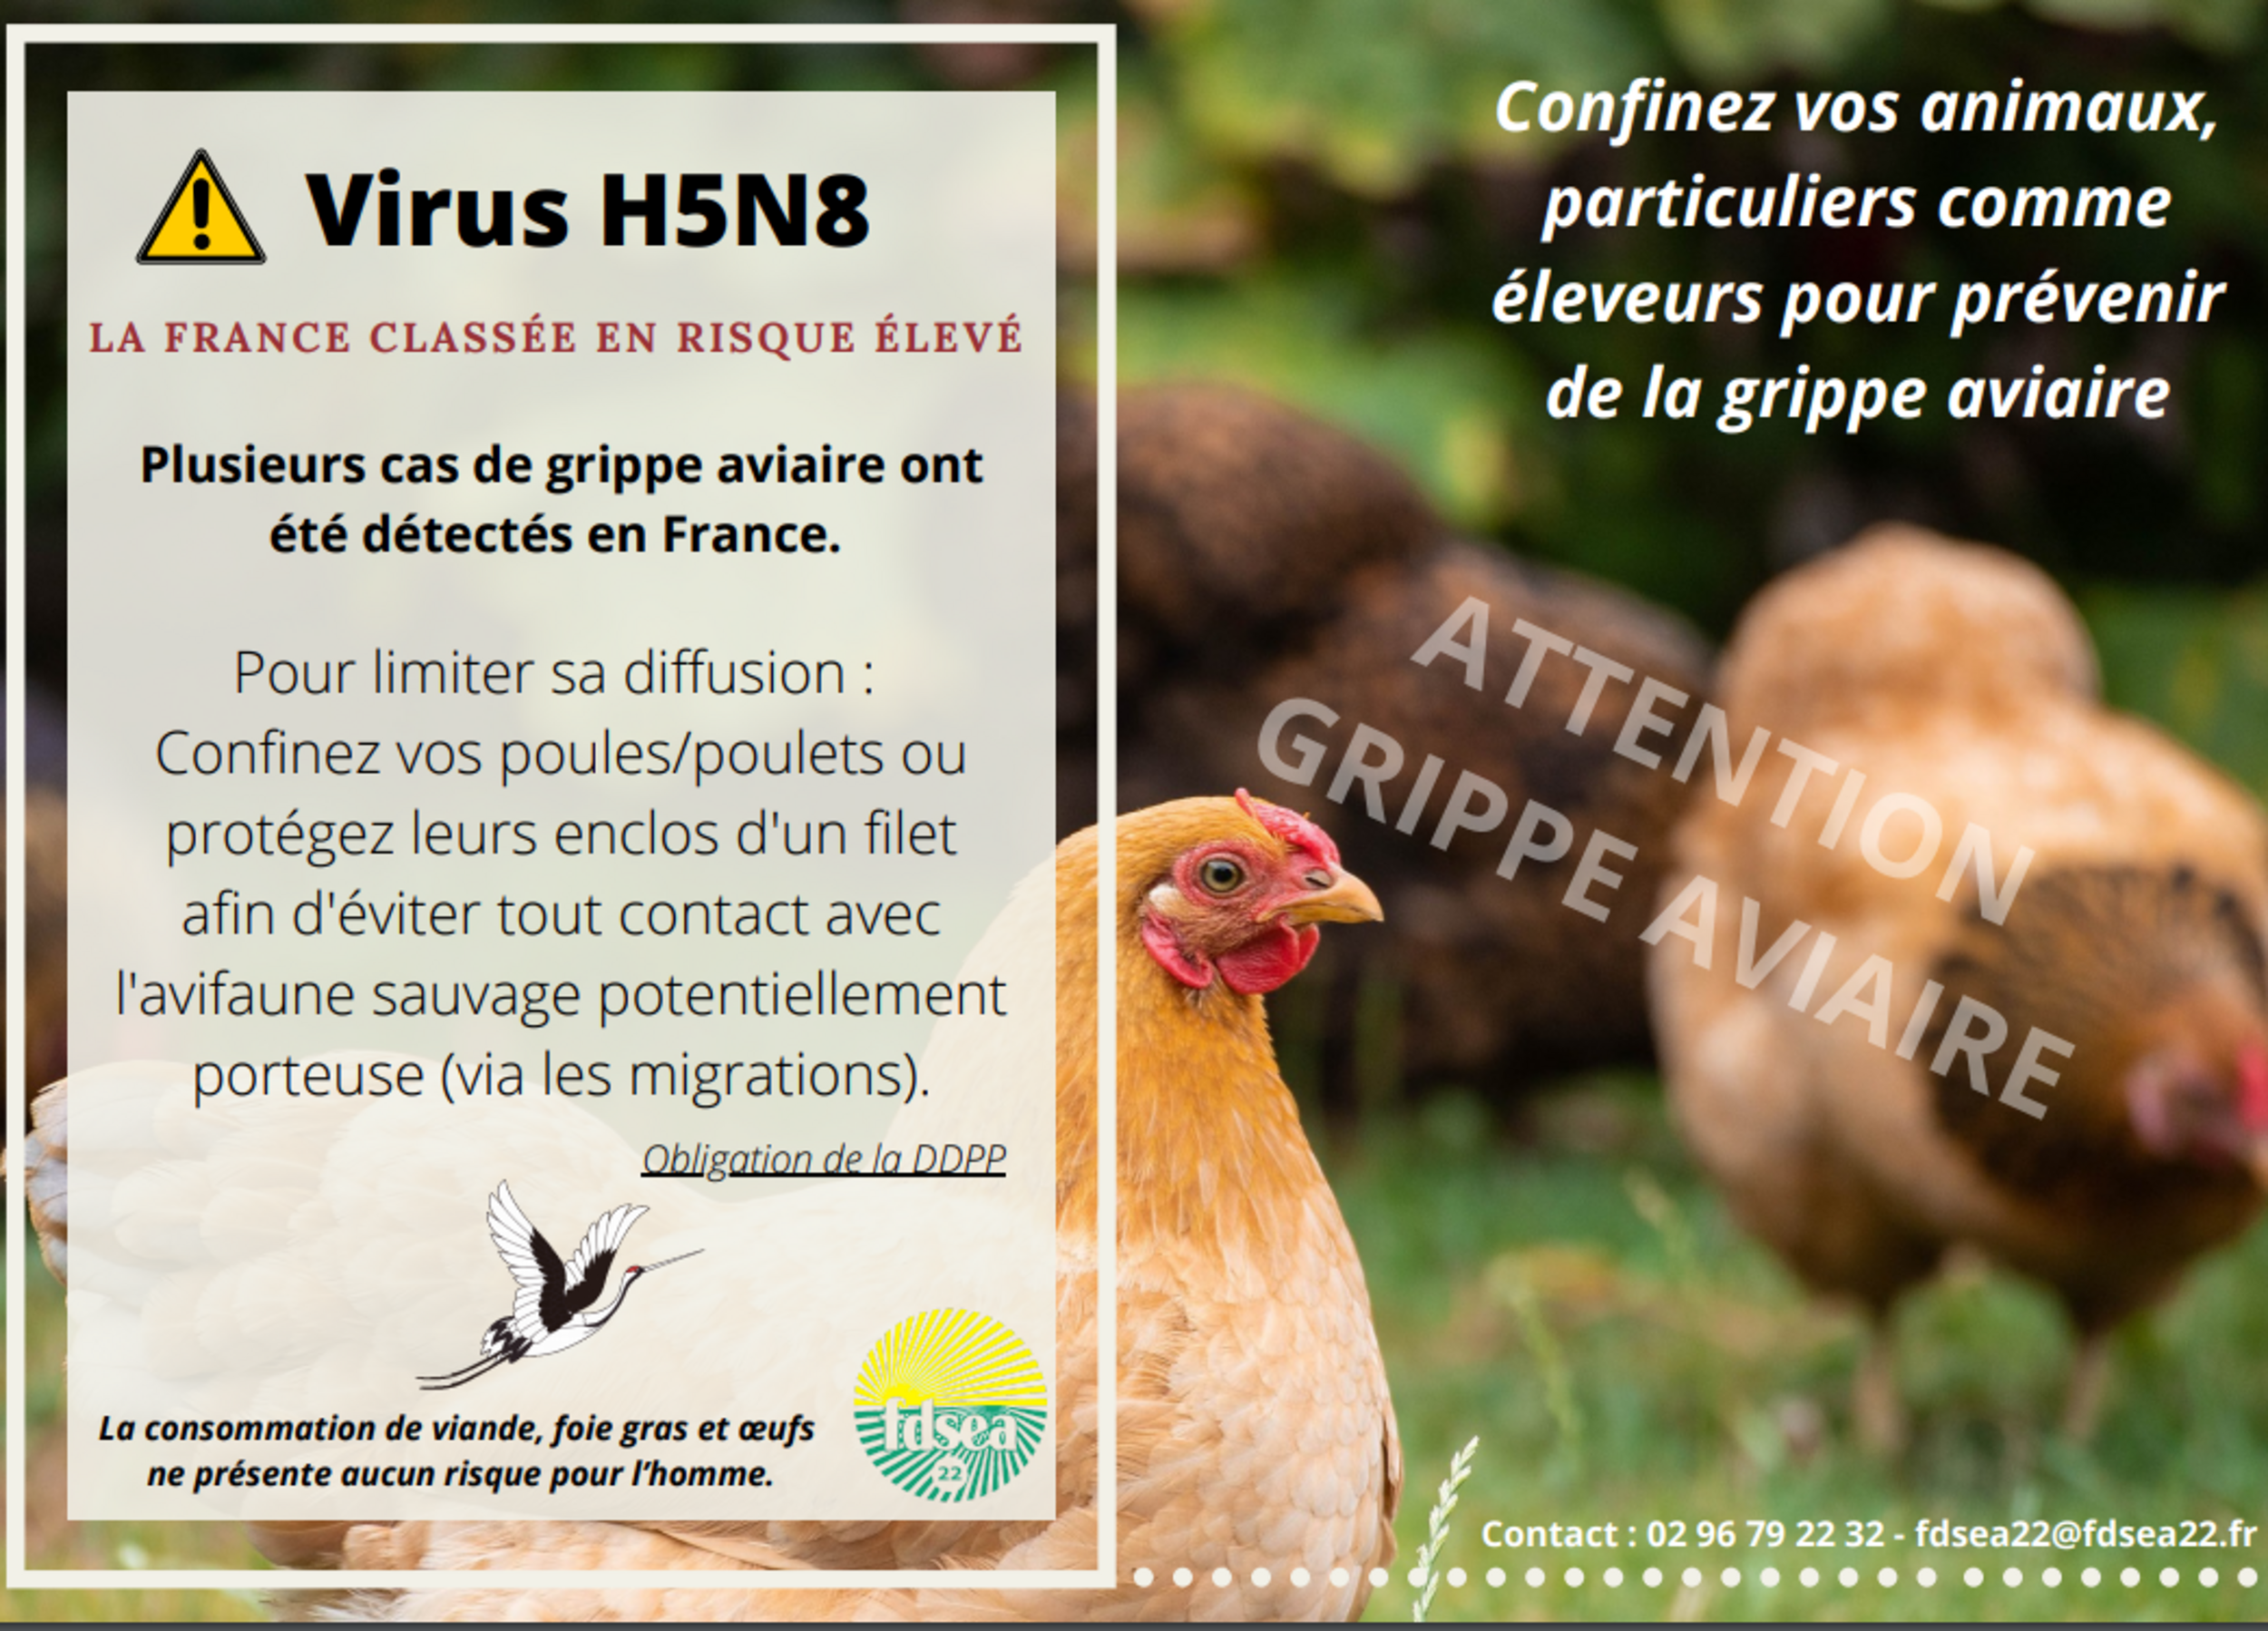 Prévention contre le virus de la grippe aviaire